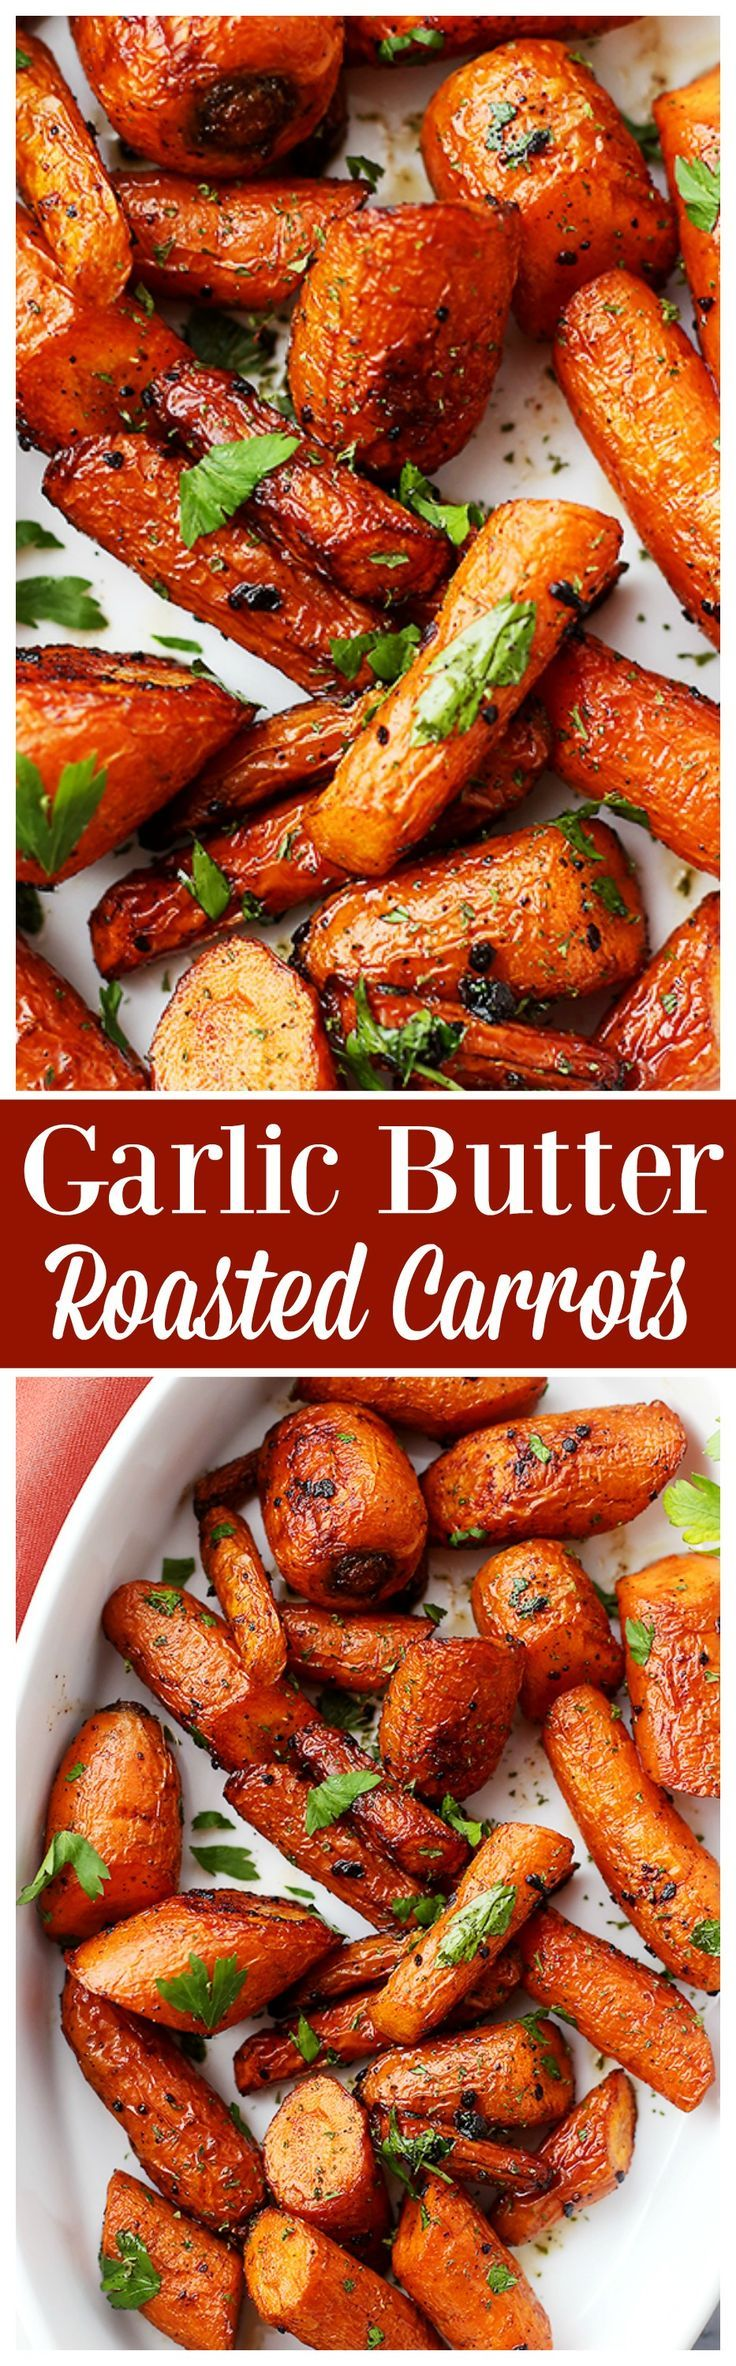 Garlic Butter Roasted Carrots Recipe | Diethood